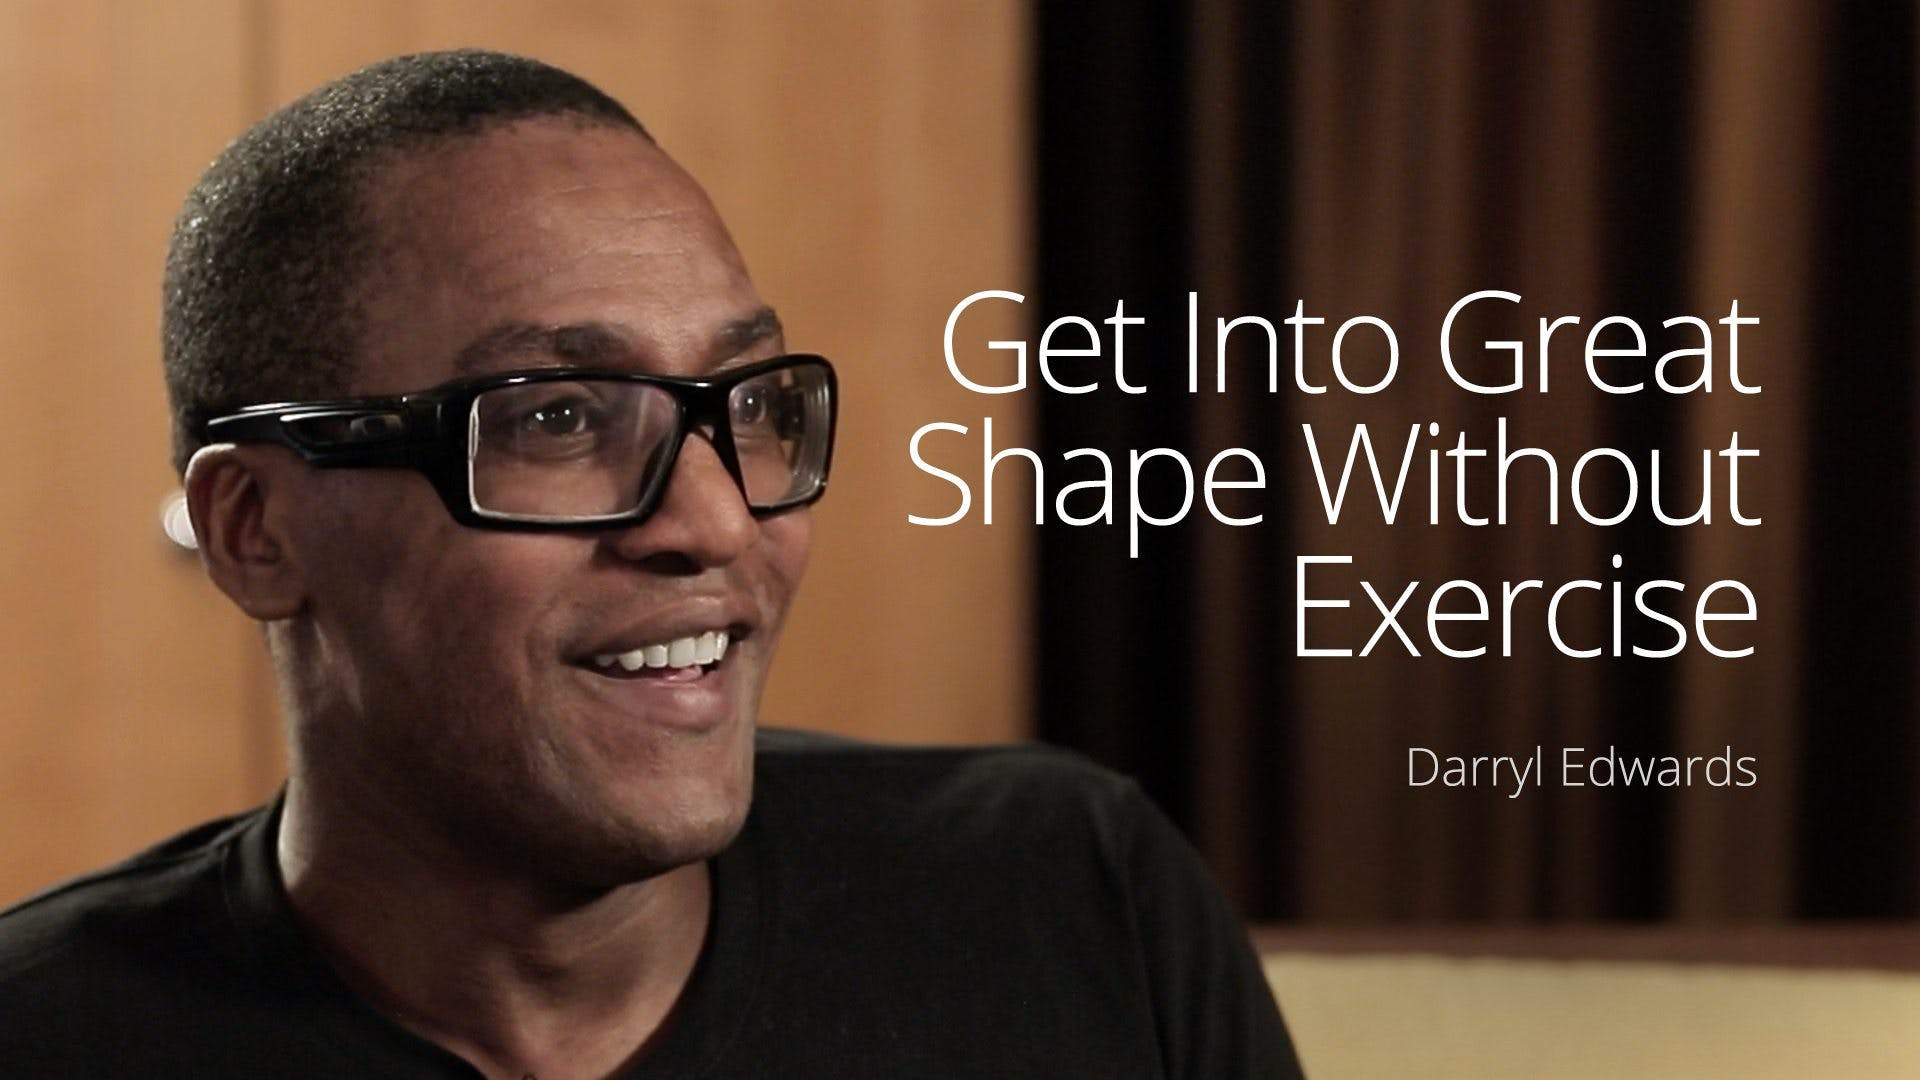 Get Into Great Shape Without Exercise – Darryl Edwards